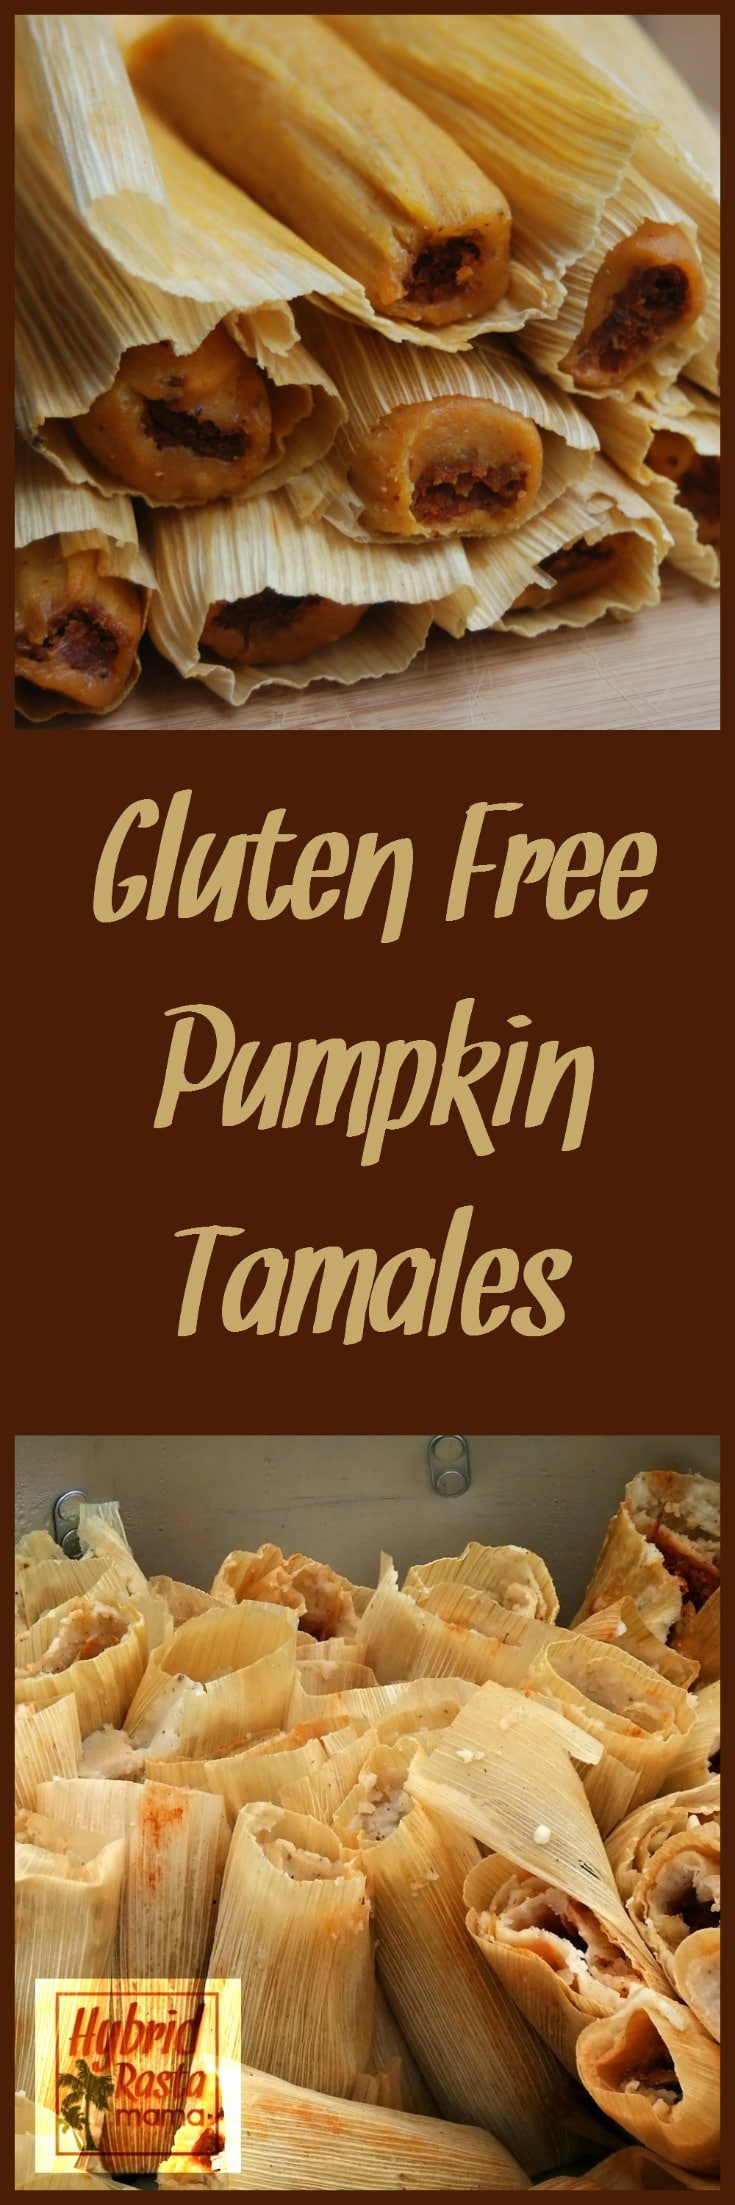 These Gluten Free Pumpkin Tamales are hands down one of the best creations I have ever made. With three cooking options, anyone can make these gluten free pumpkin tamales a success. Brought to you by HybridRastaMama.com